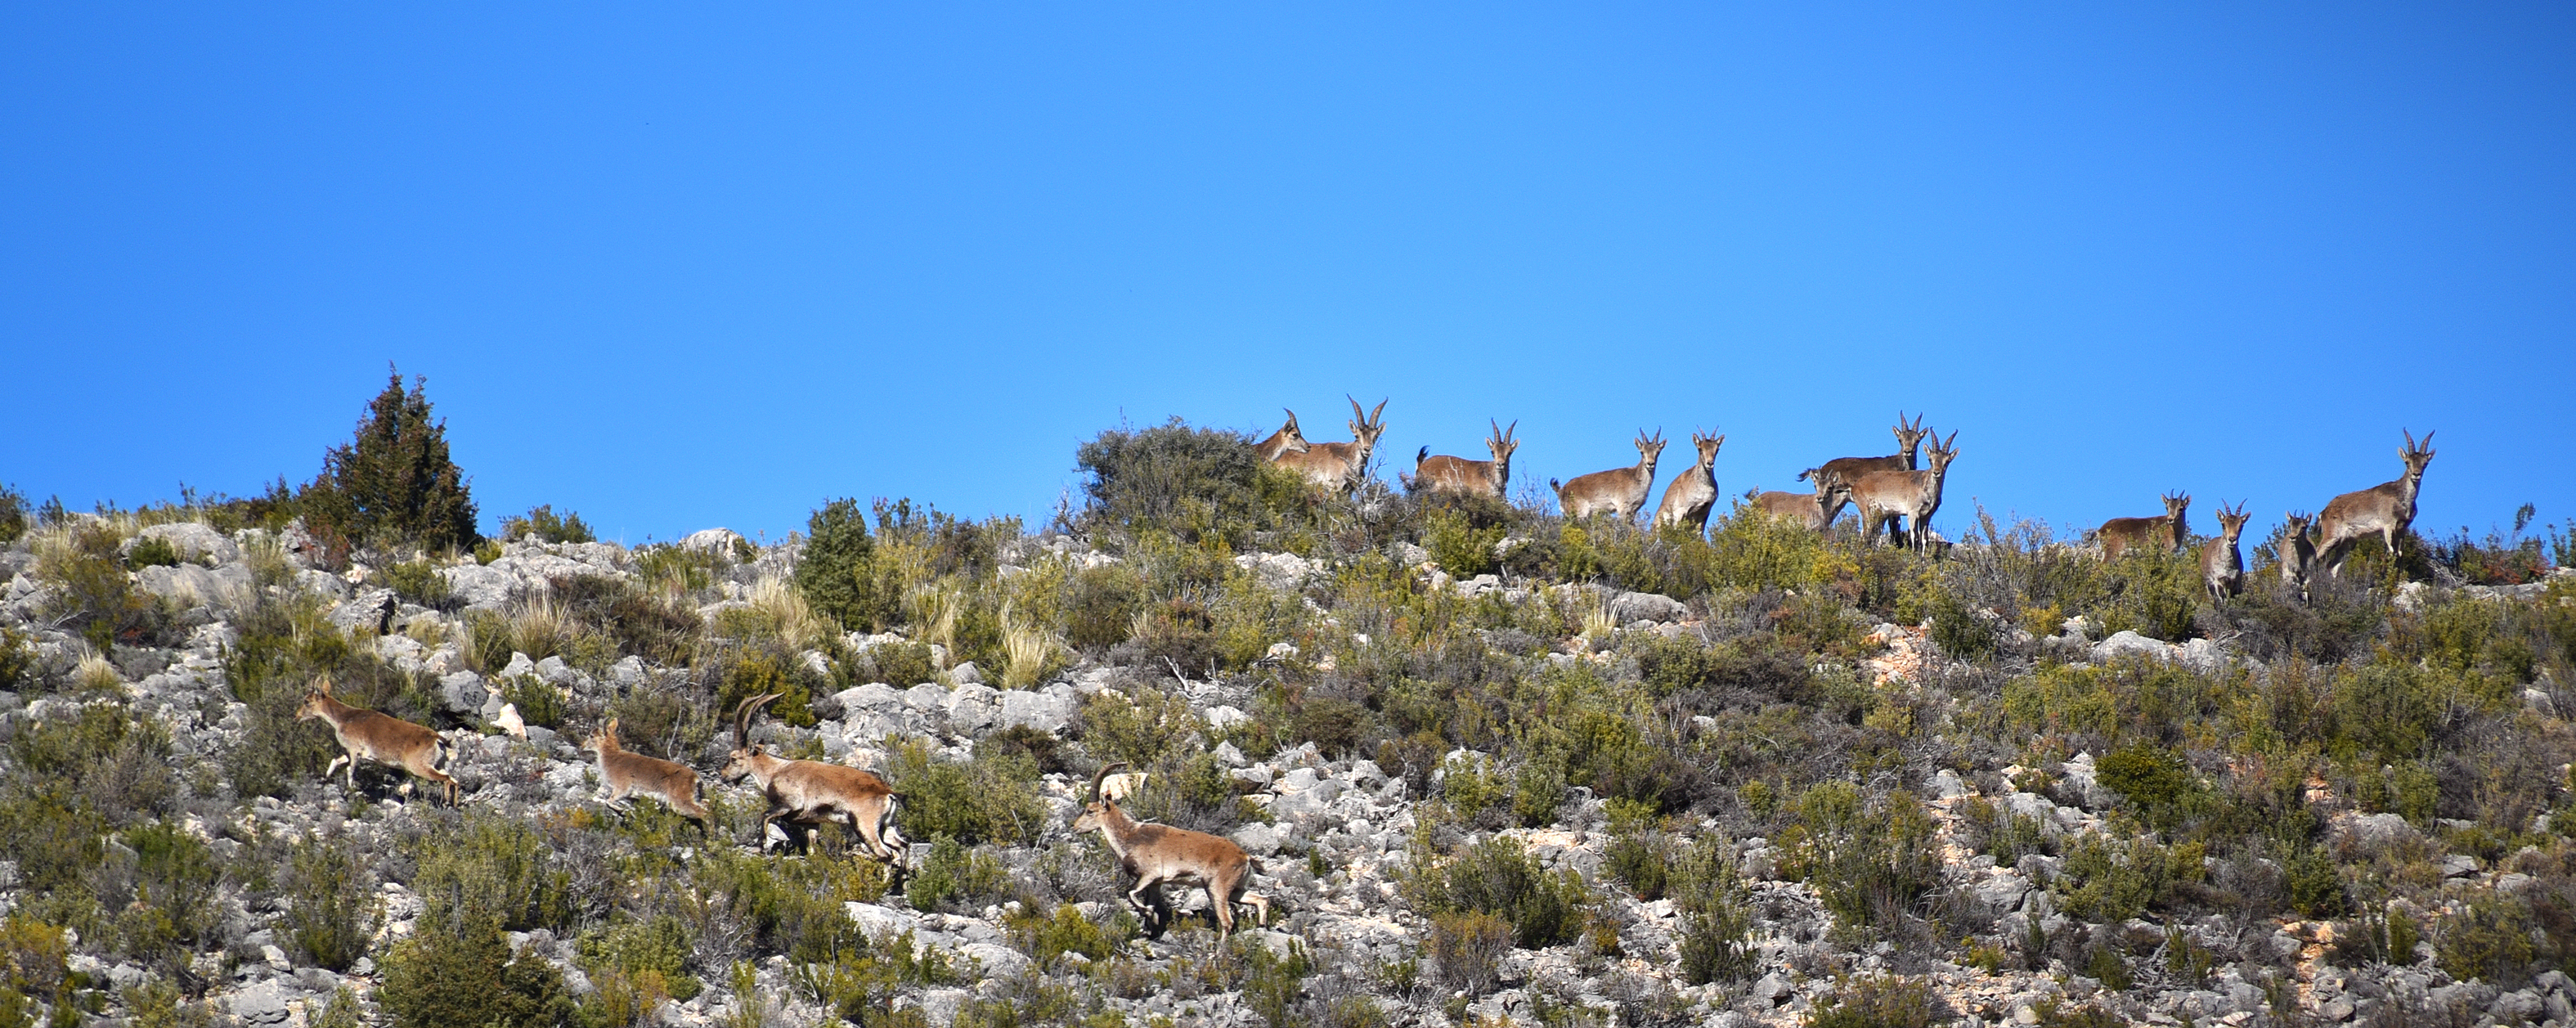 Ibex On The Mountain